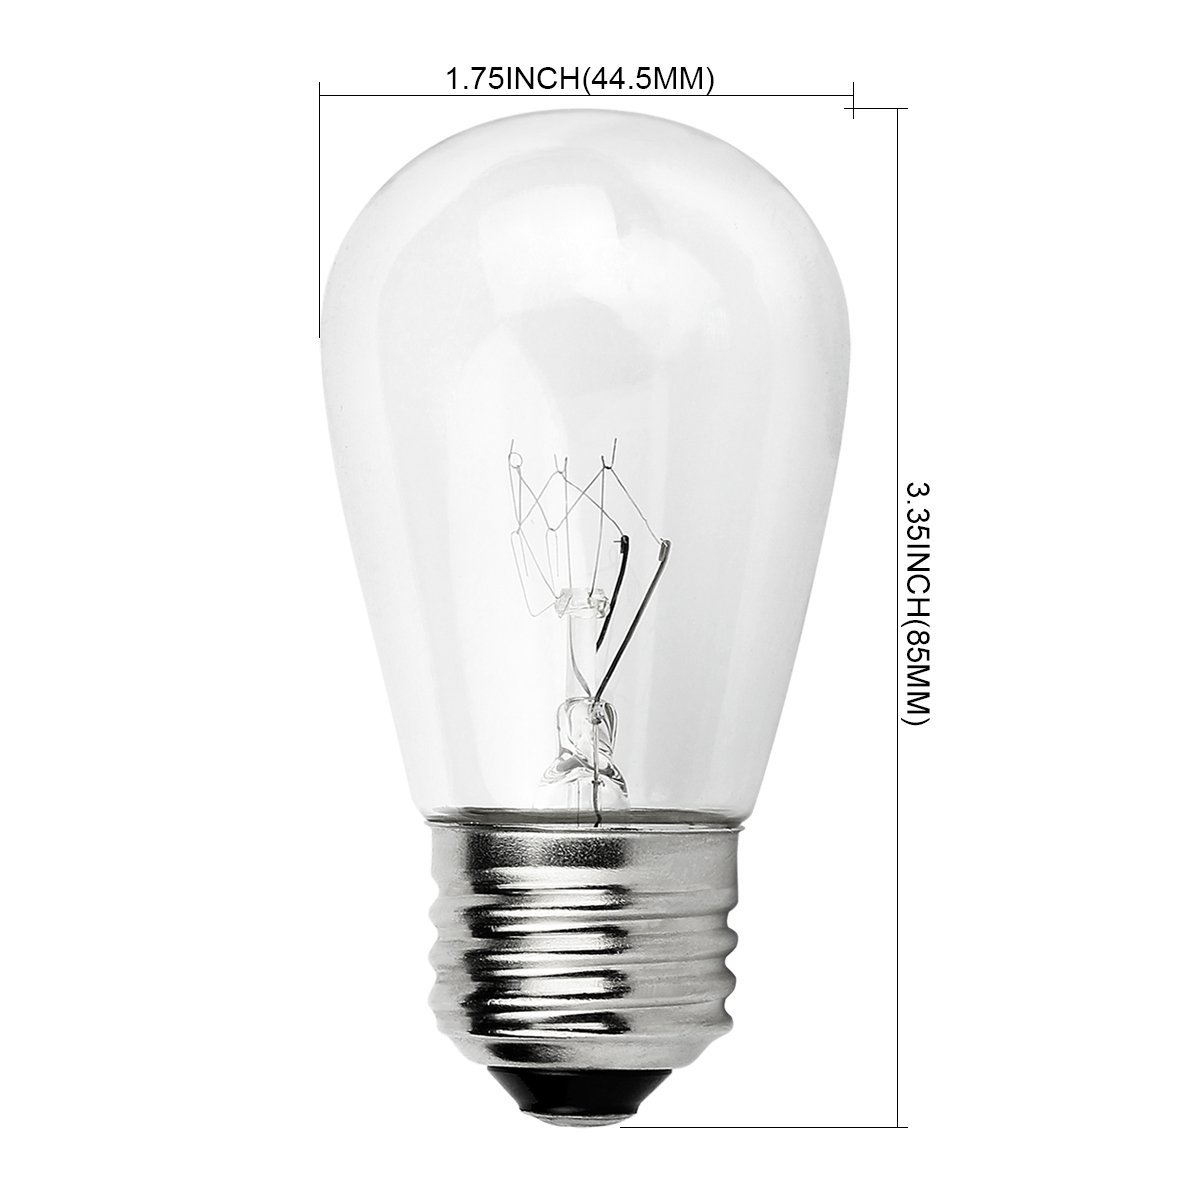 Newhouse Lighting Outdoor S14 Incandescent Replacement